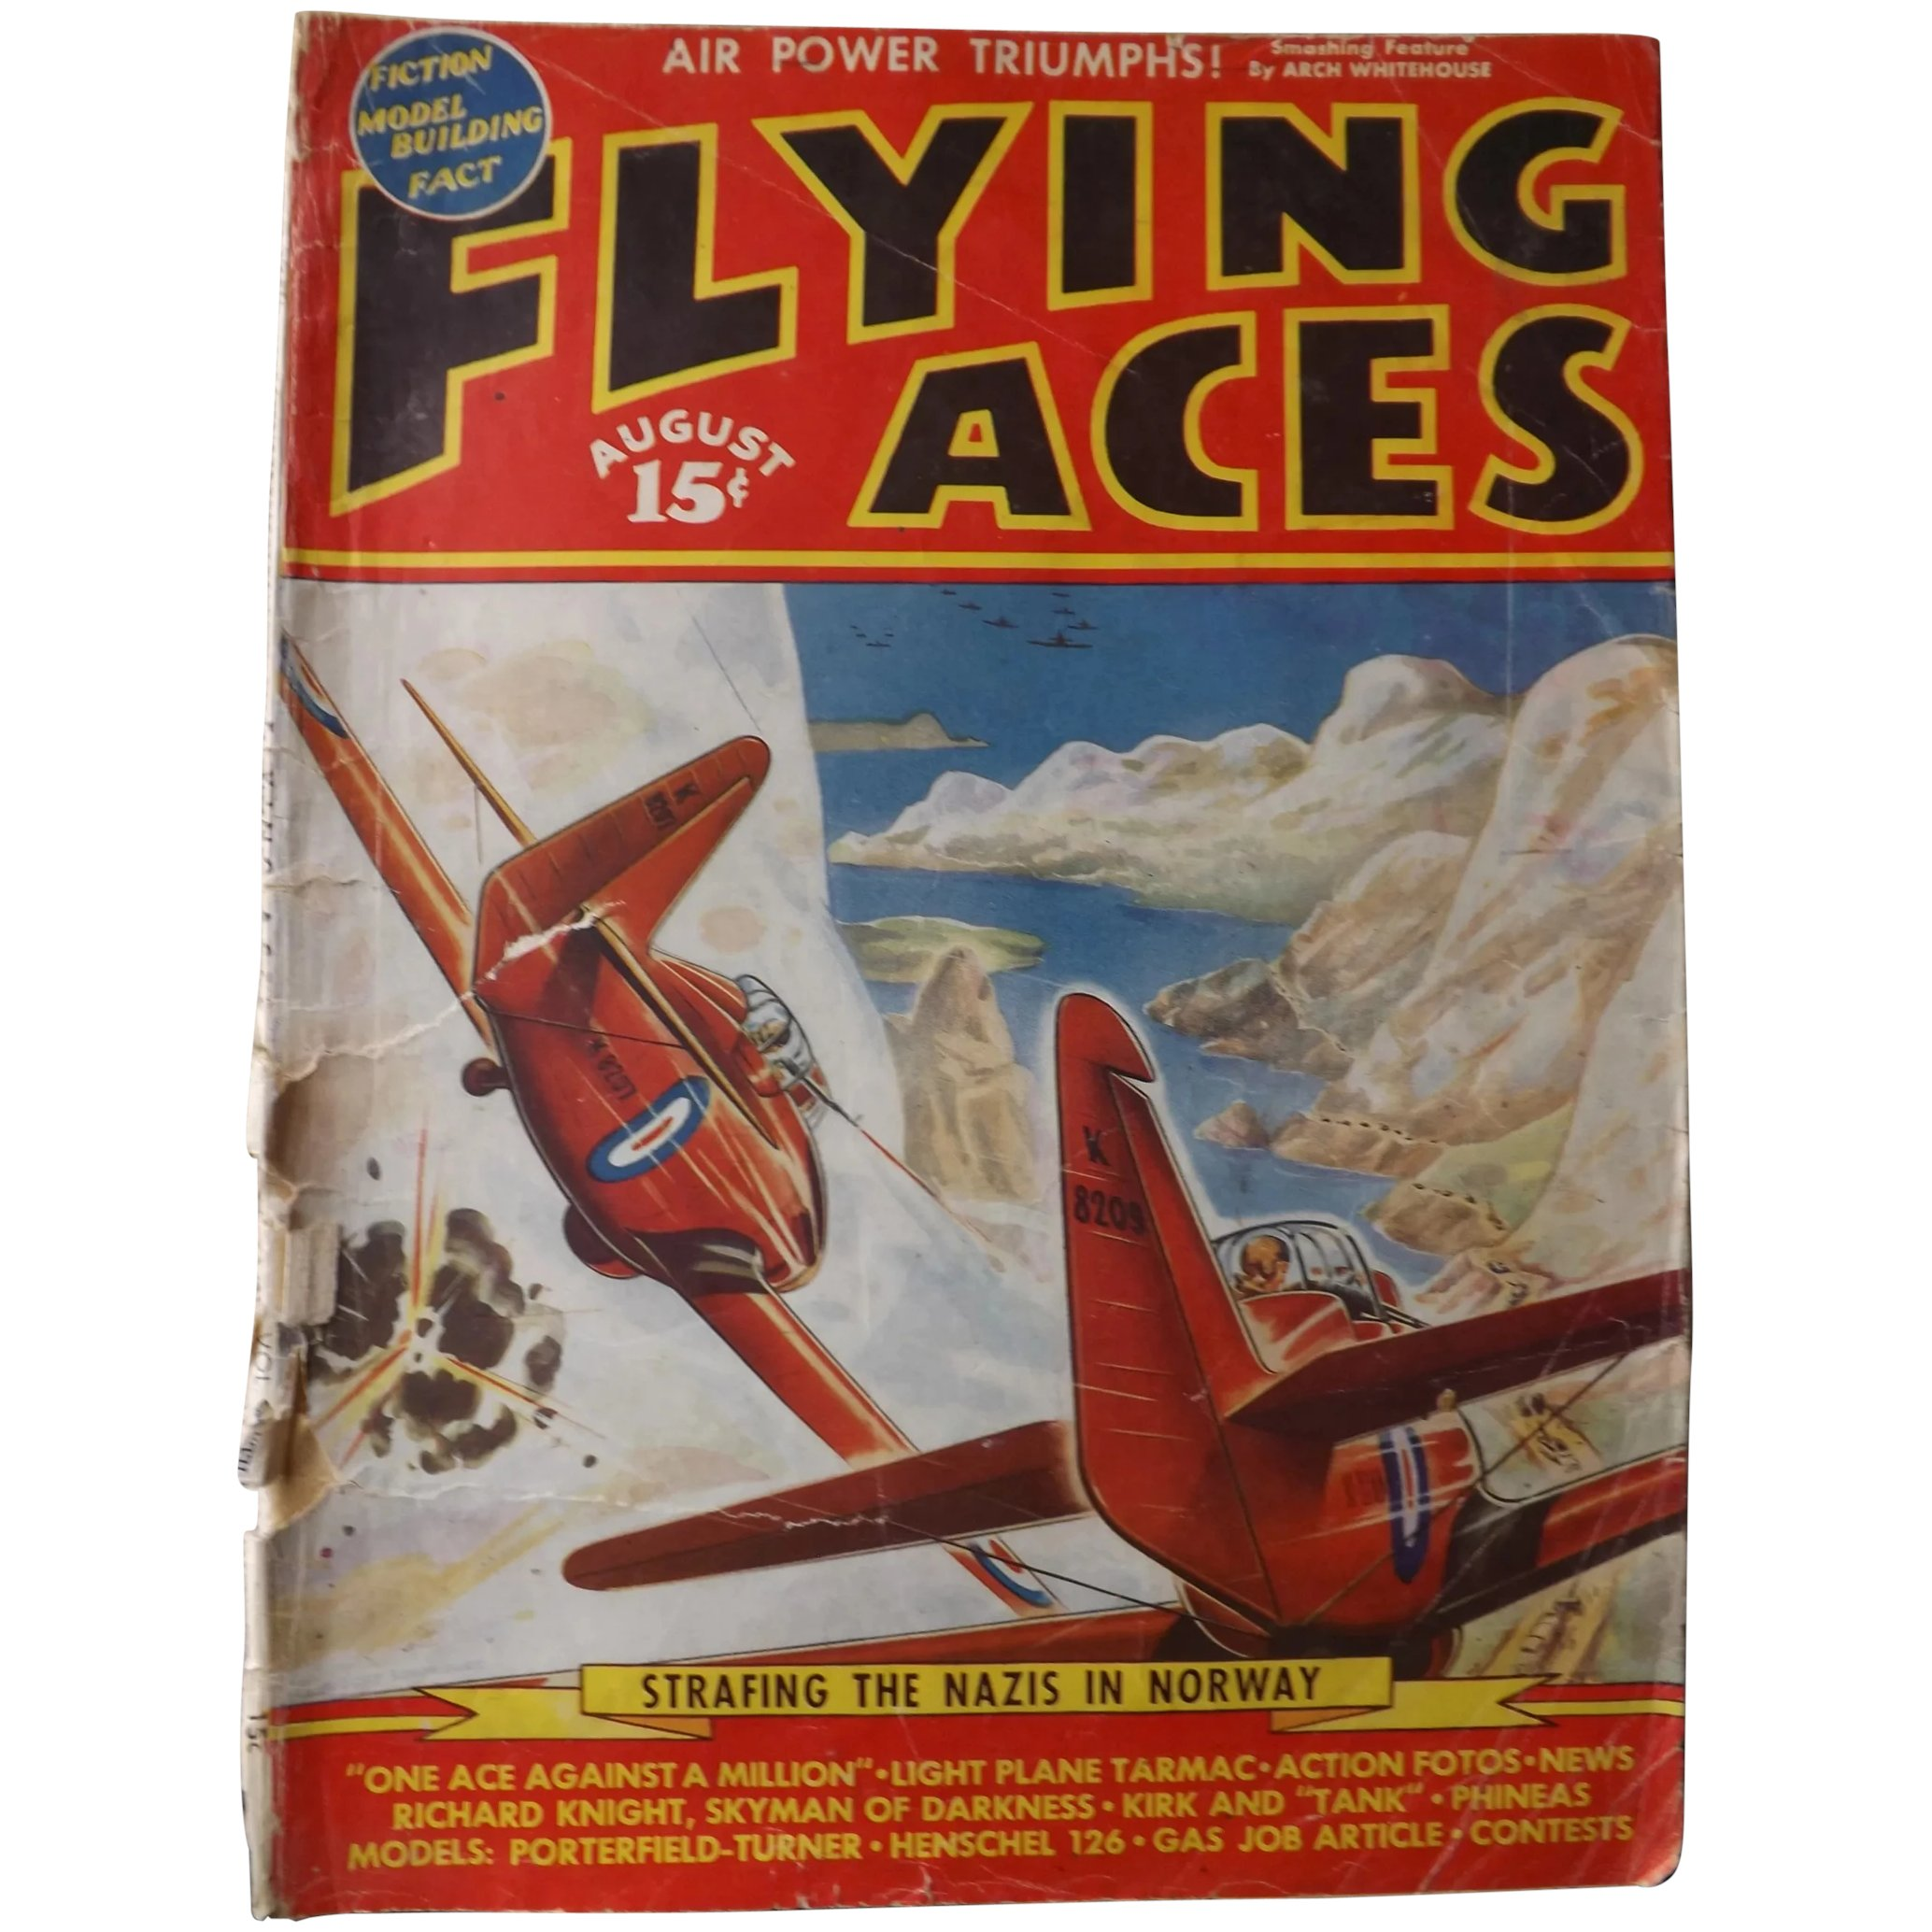 FLYING ACES Magazine August 1940